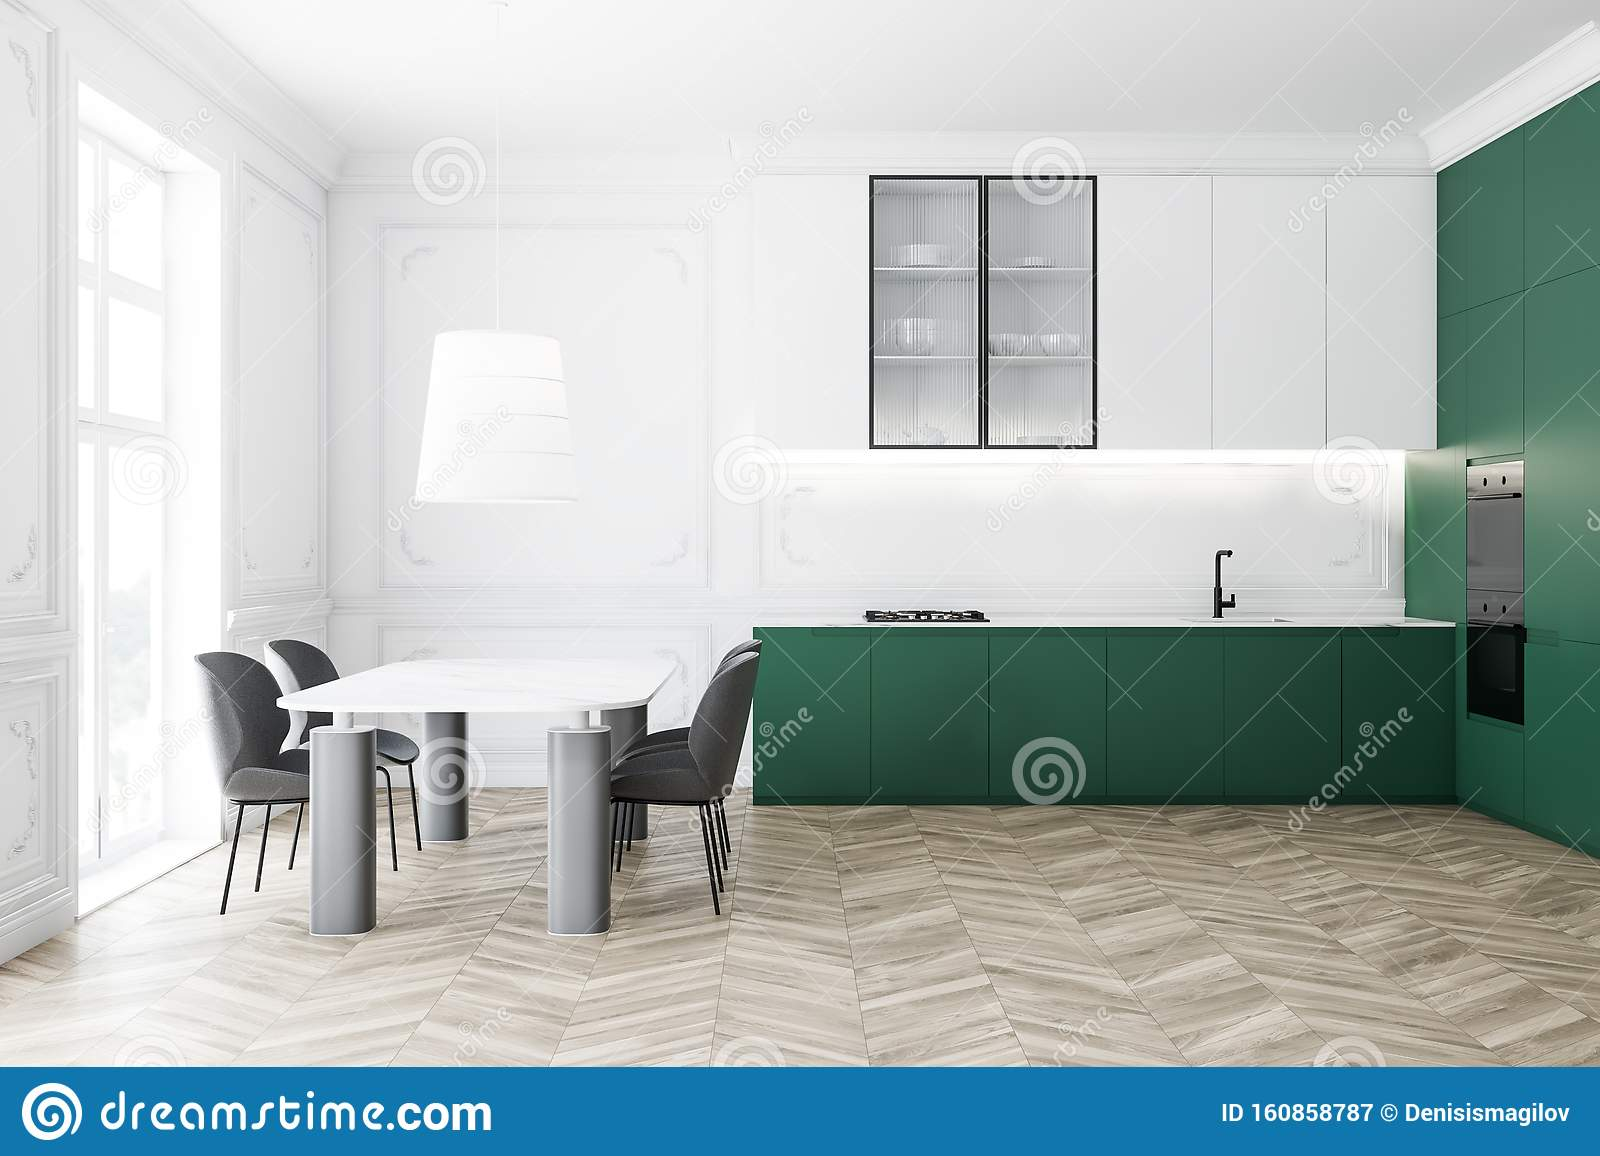 Side View Of White And Green Kitchen With Table Stock Illustration Illustration Of Chair Kitchenware 160858787